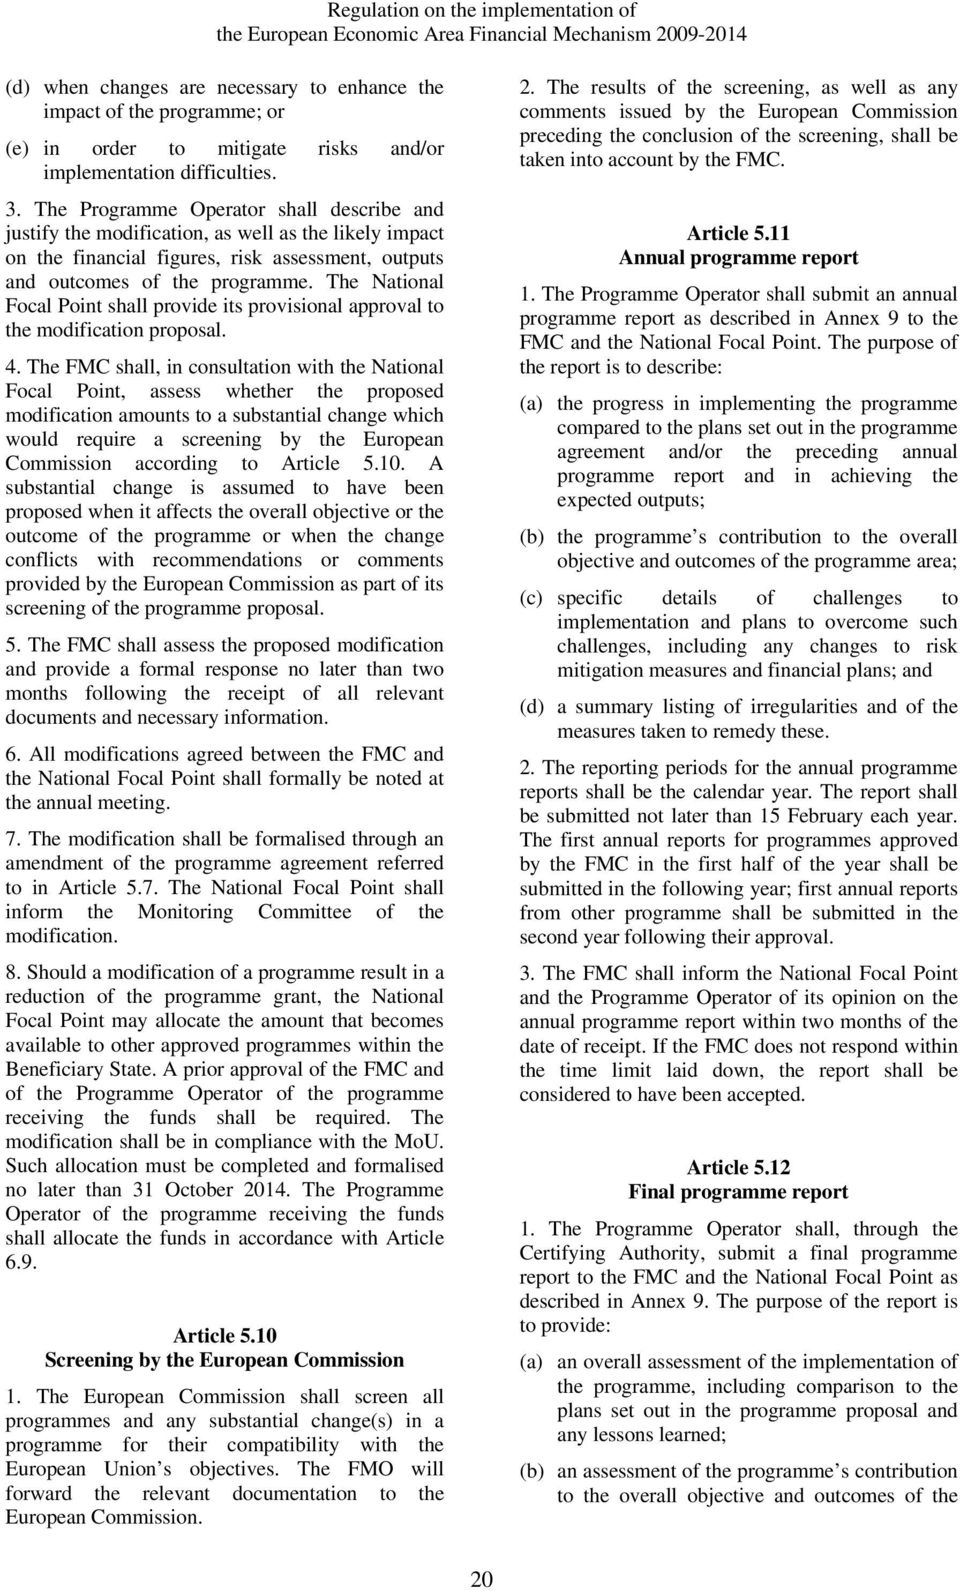 The National Focal Point shall provide its provisional approval to the modification proposal. 4.